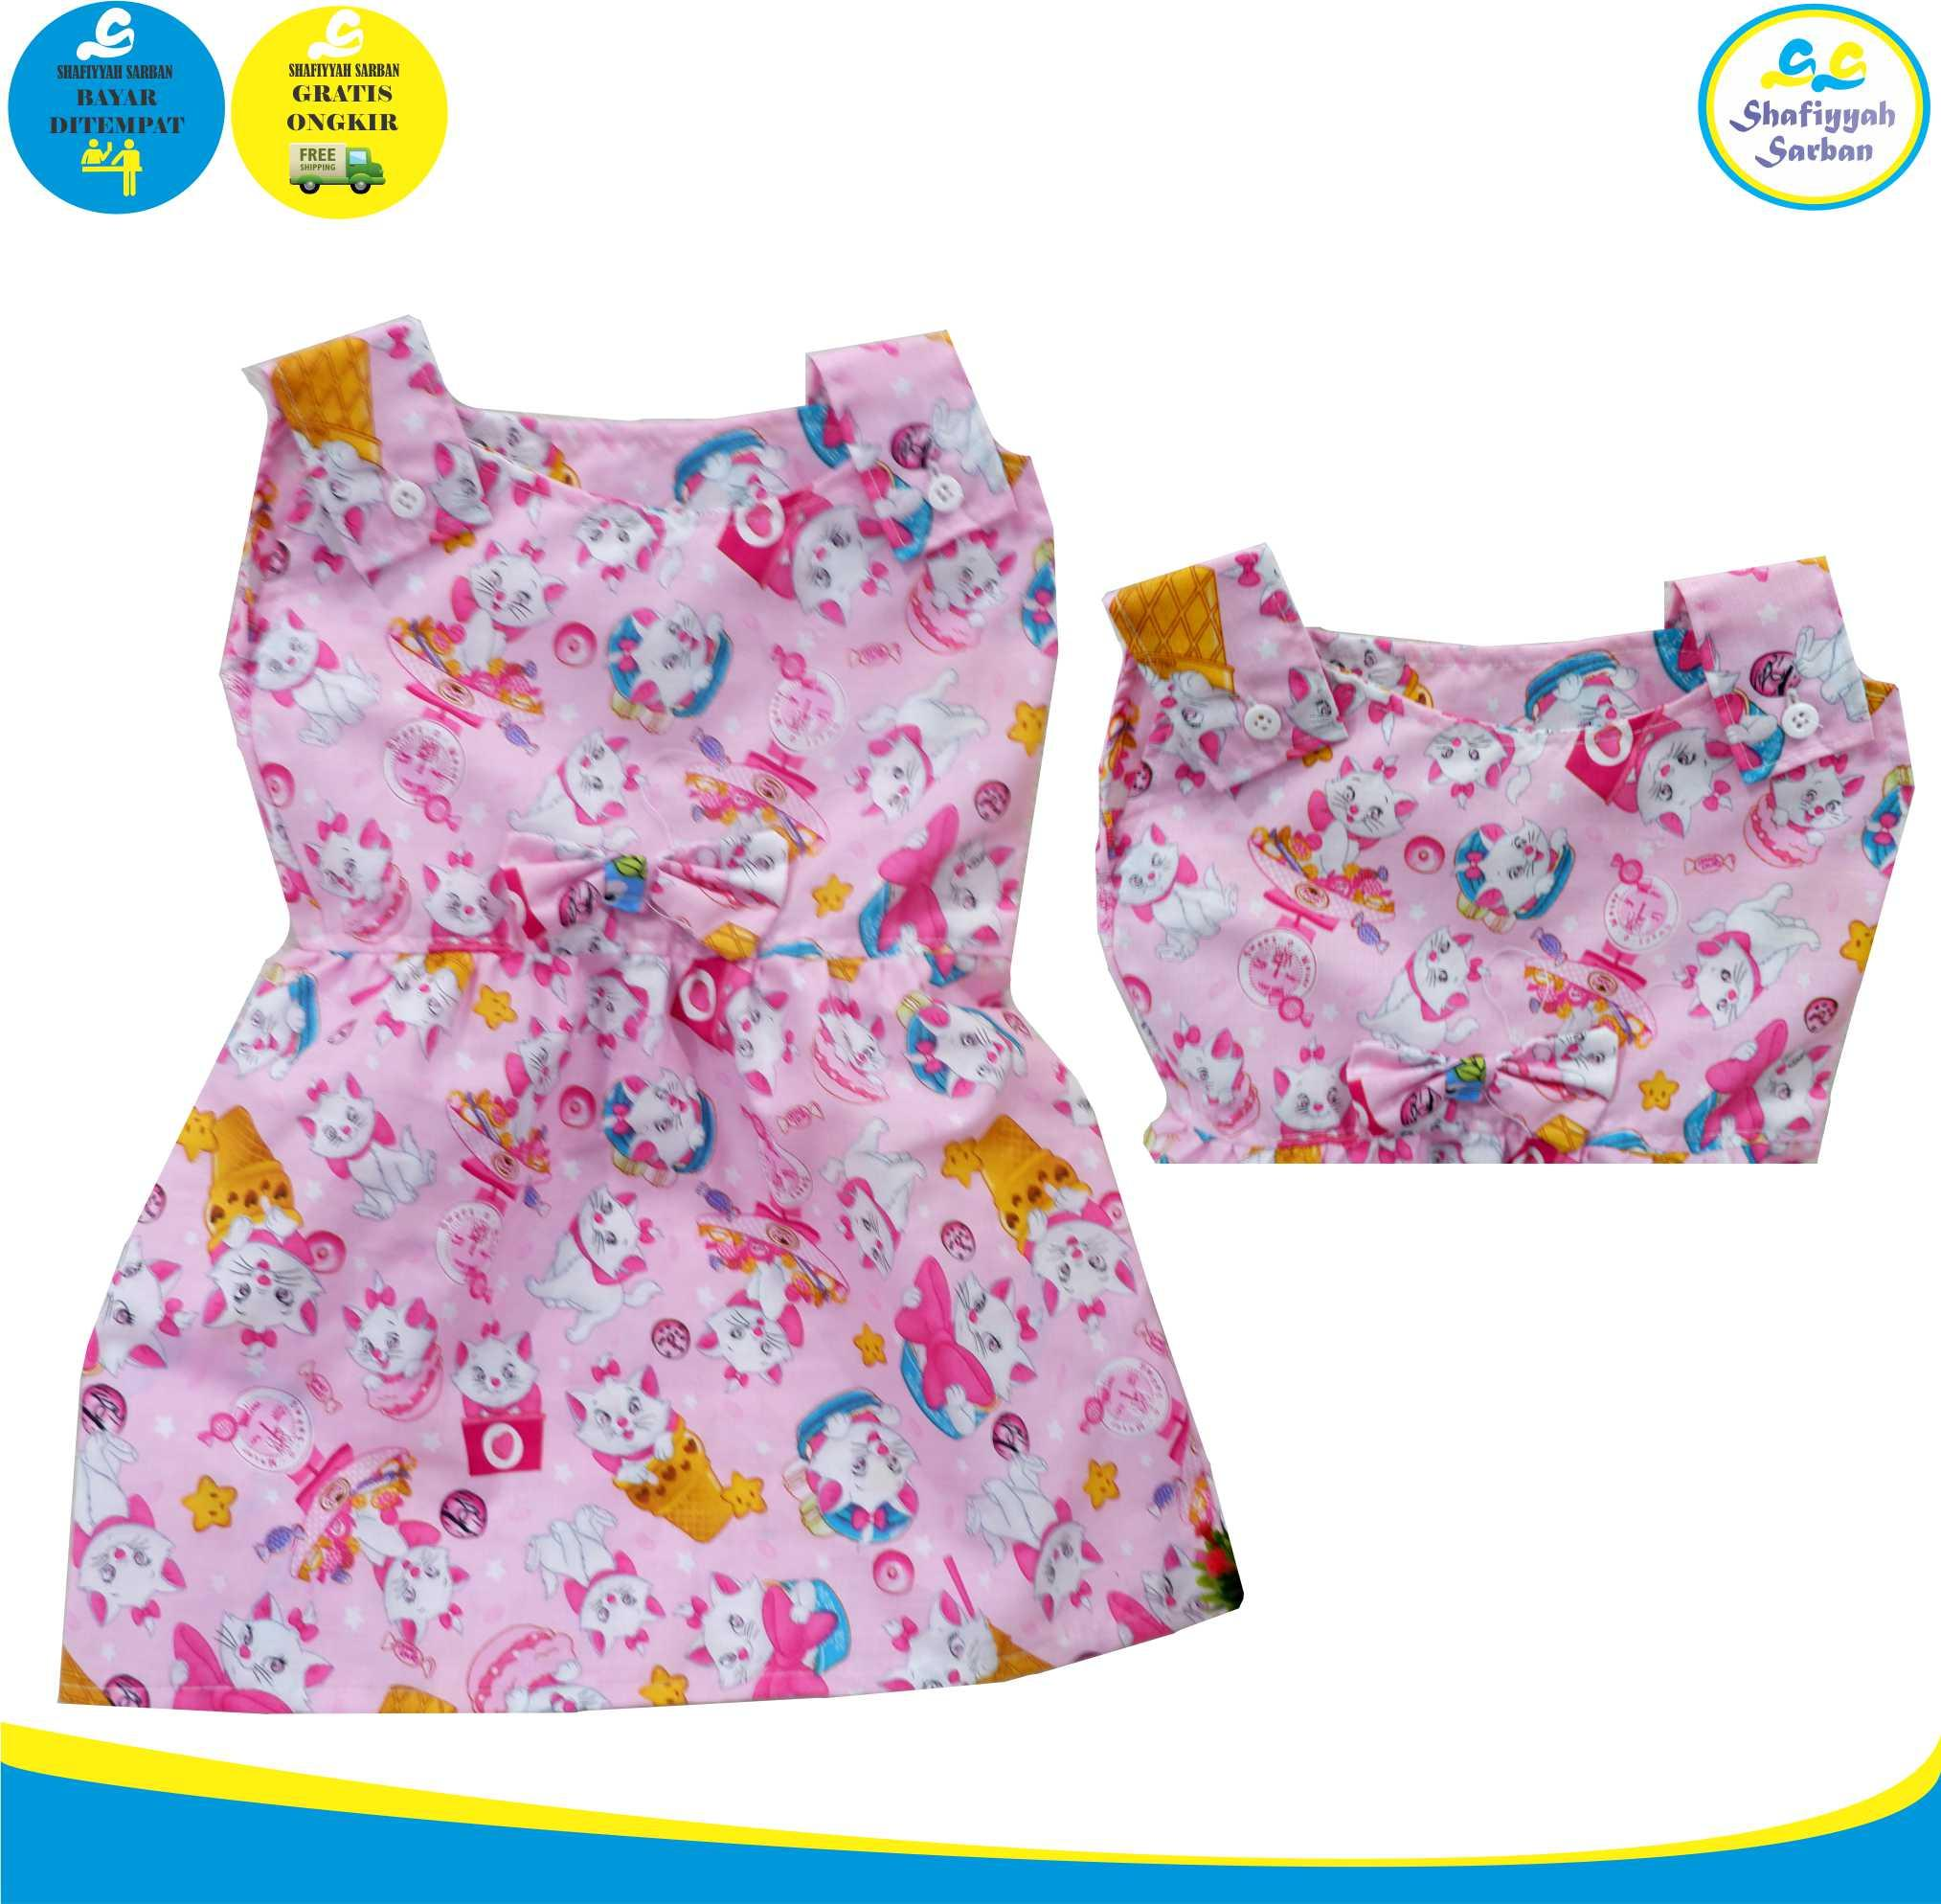 Dress Bahu Kancing - DRESS - Baju Anak f44122f842